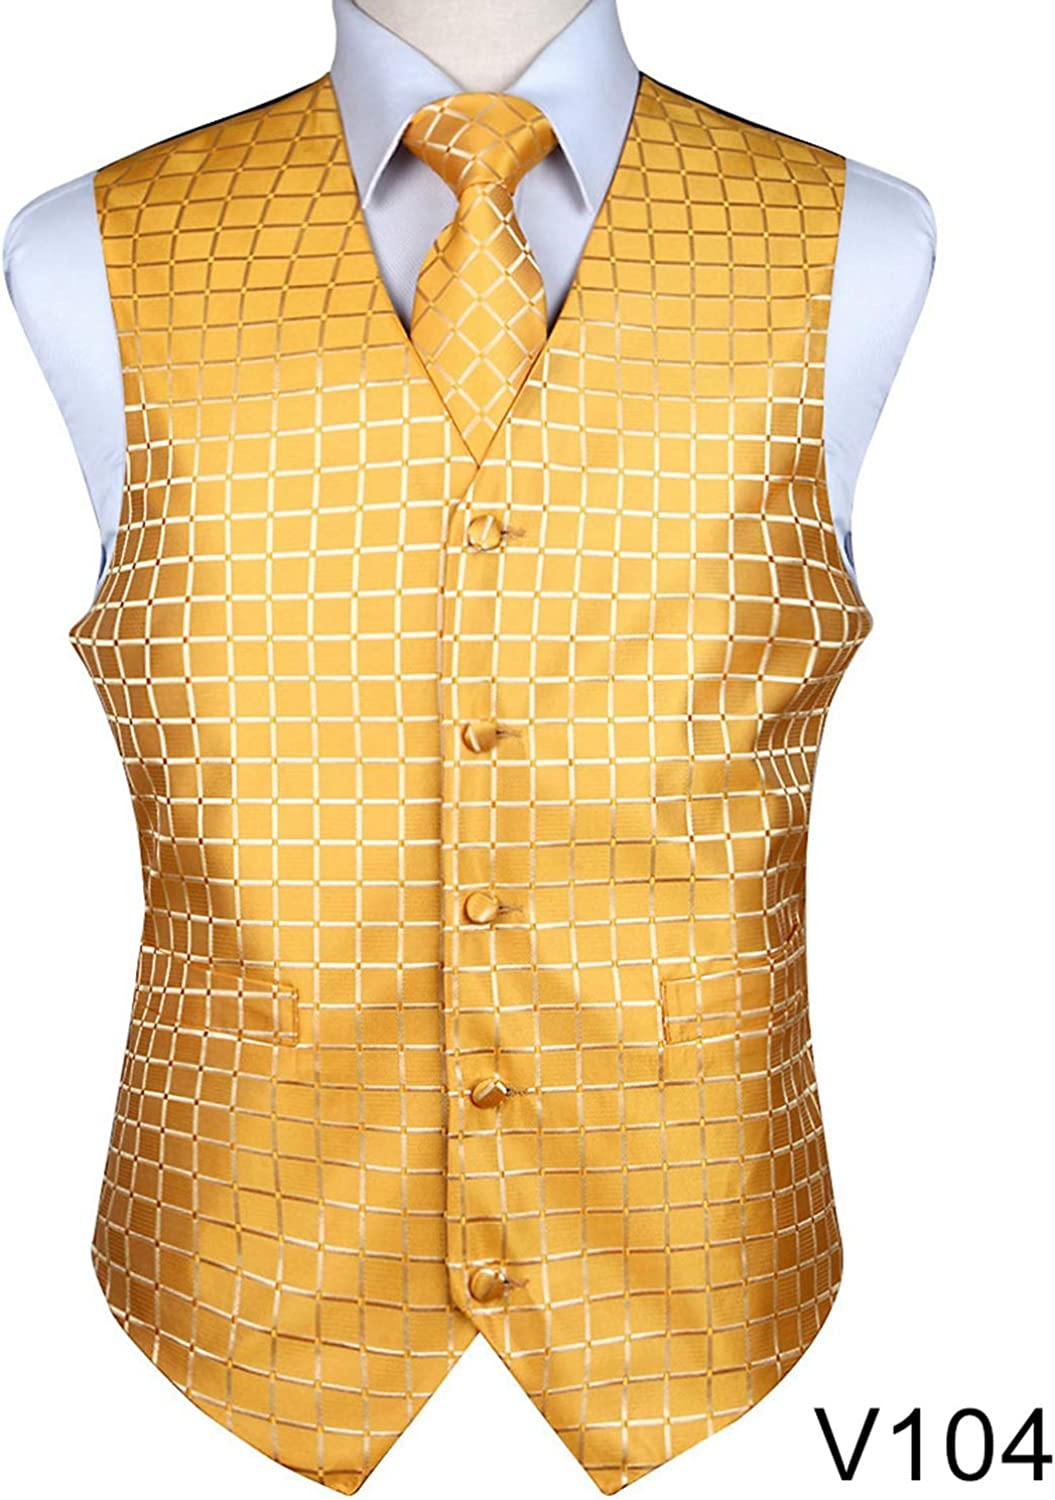 0a307a435dcb0 Carolyn Jones Men's Classic Classic Classic Party Wedding Plaid Floral Jacquard  Waistcoat Vest Pocket Square Tie Suit Set Pocket Square Set 152ae6